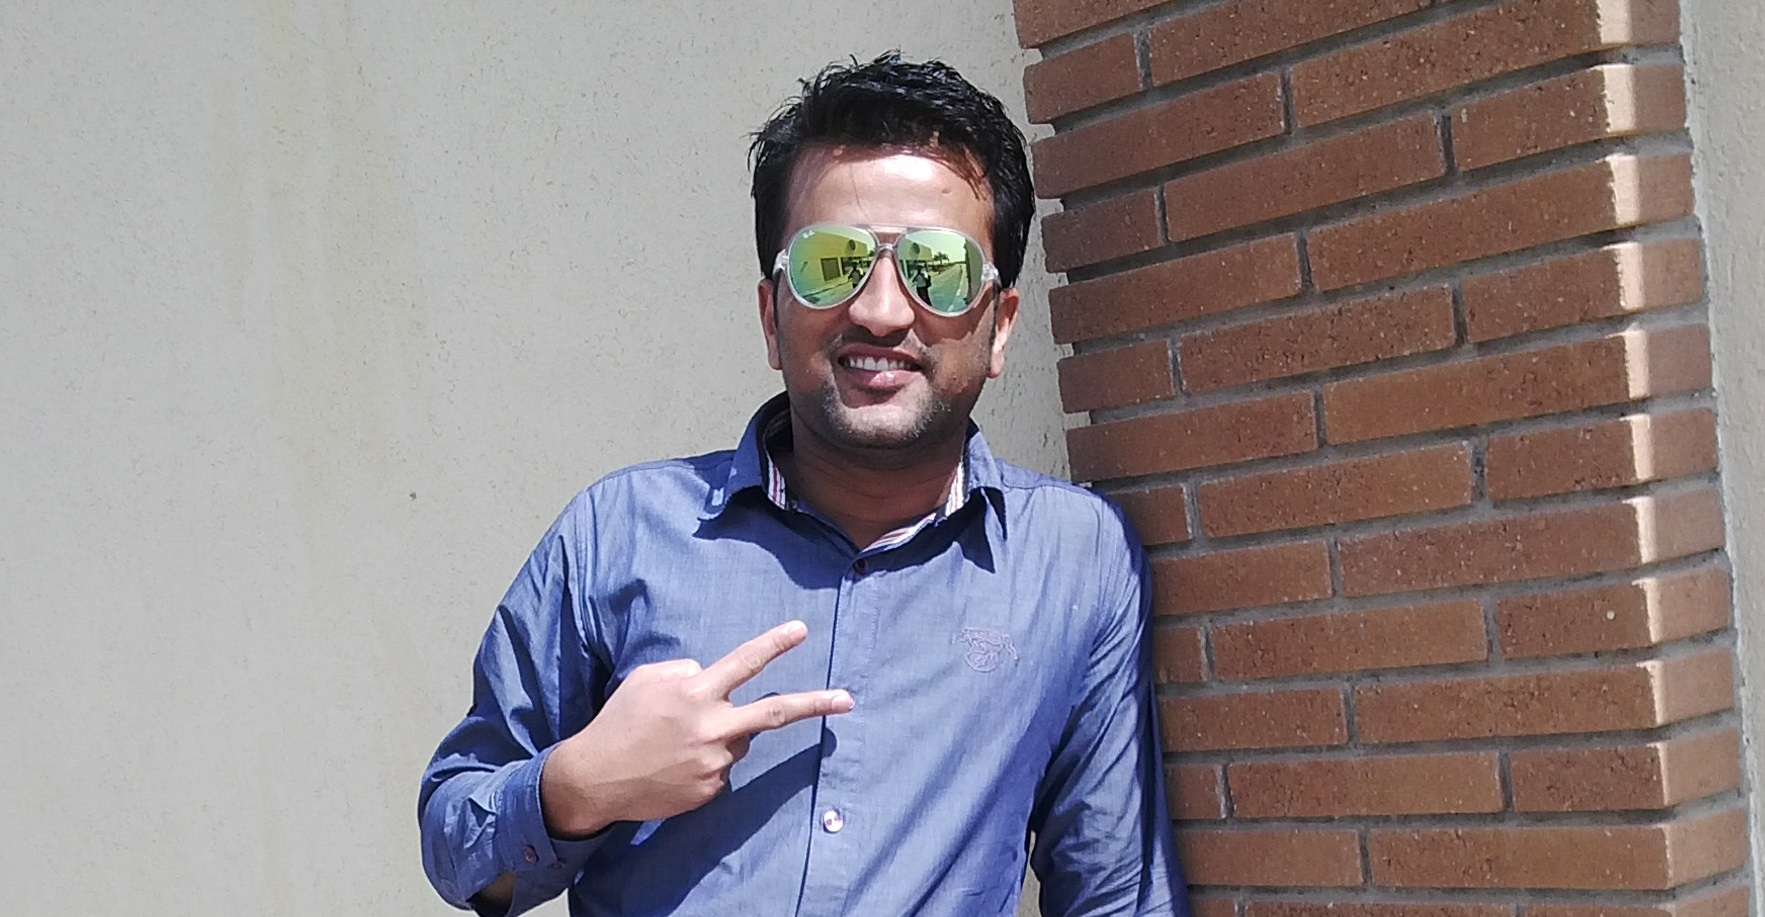 Nirmal Quit Job in Kuwait to Start Eco-Friendly Pencil Startup in Nepal